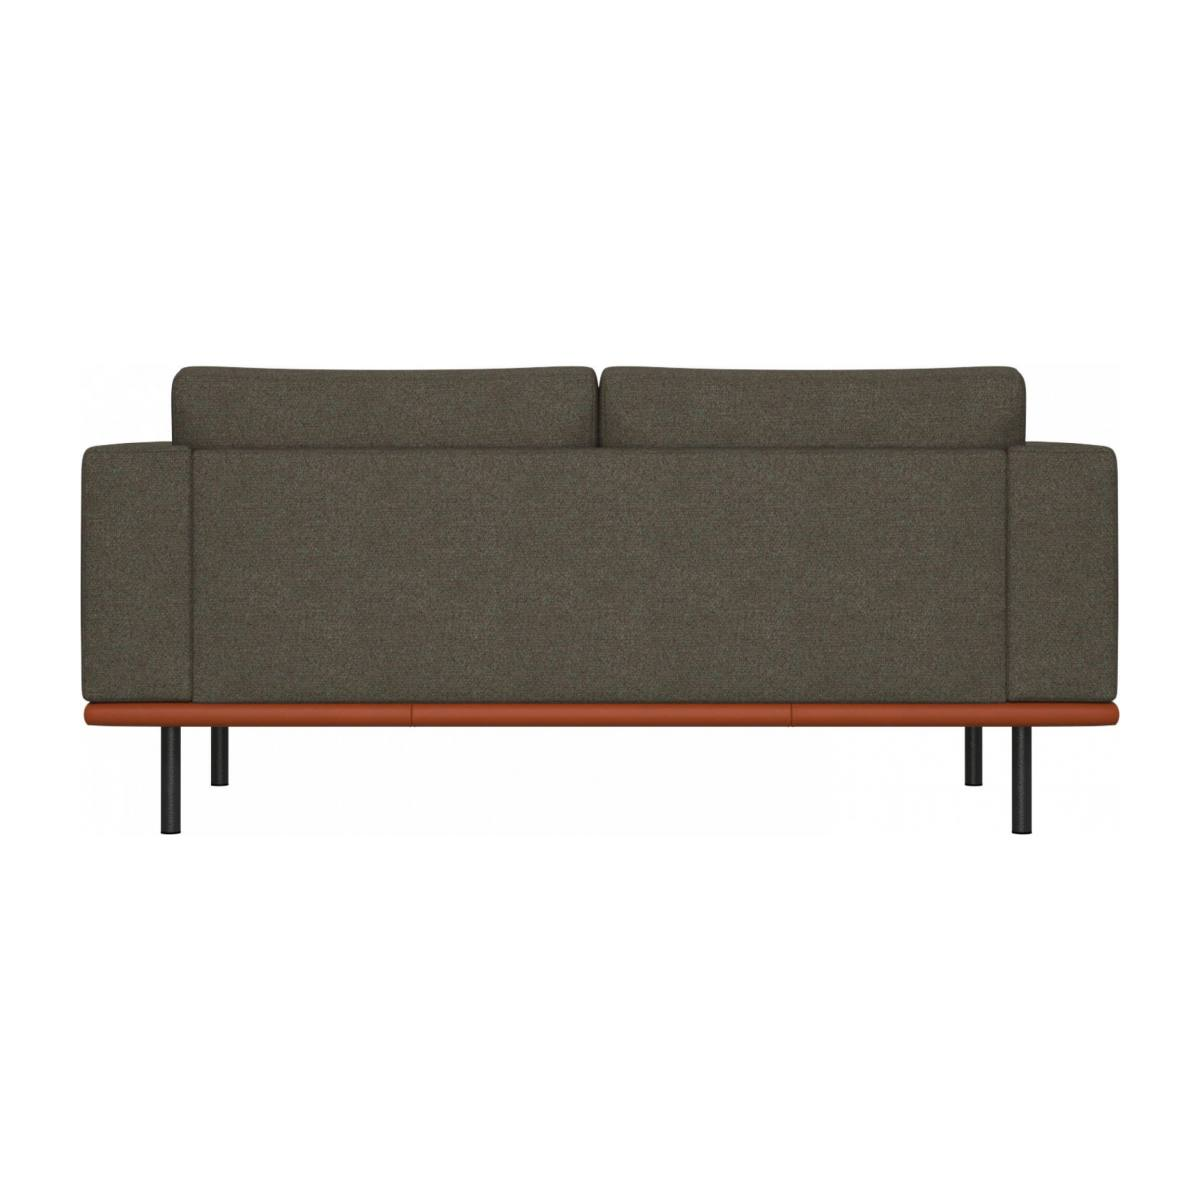 2 seater sofa in Lecce fabric, slade grey with base in brown leather n°4